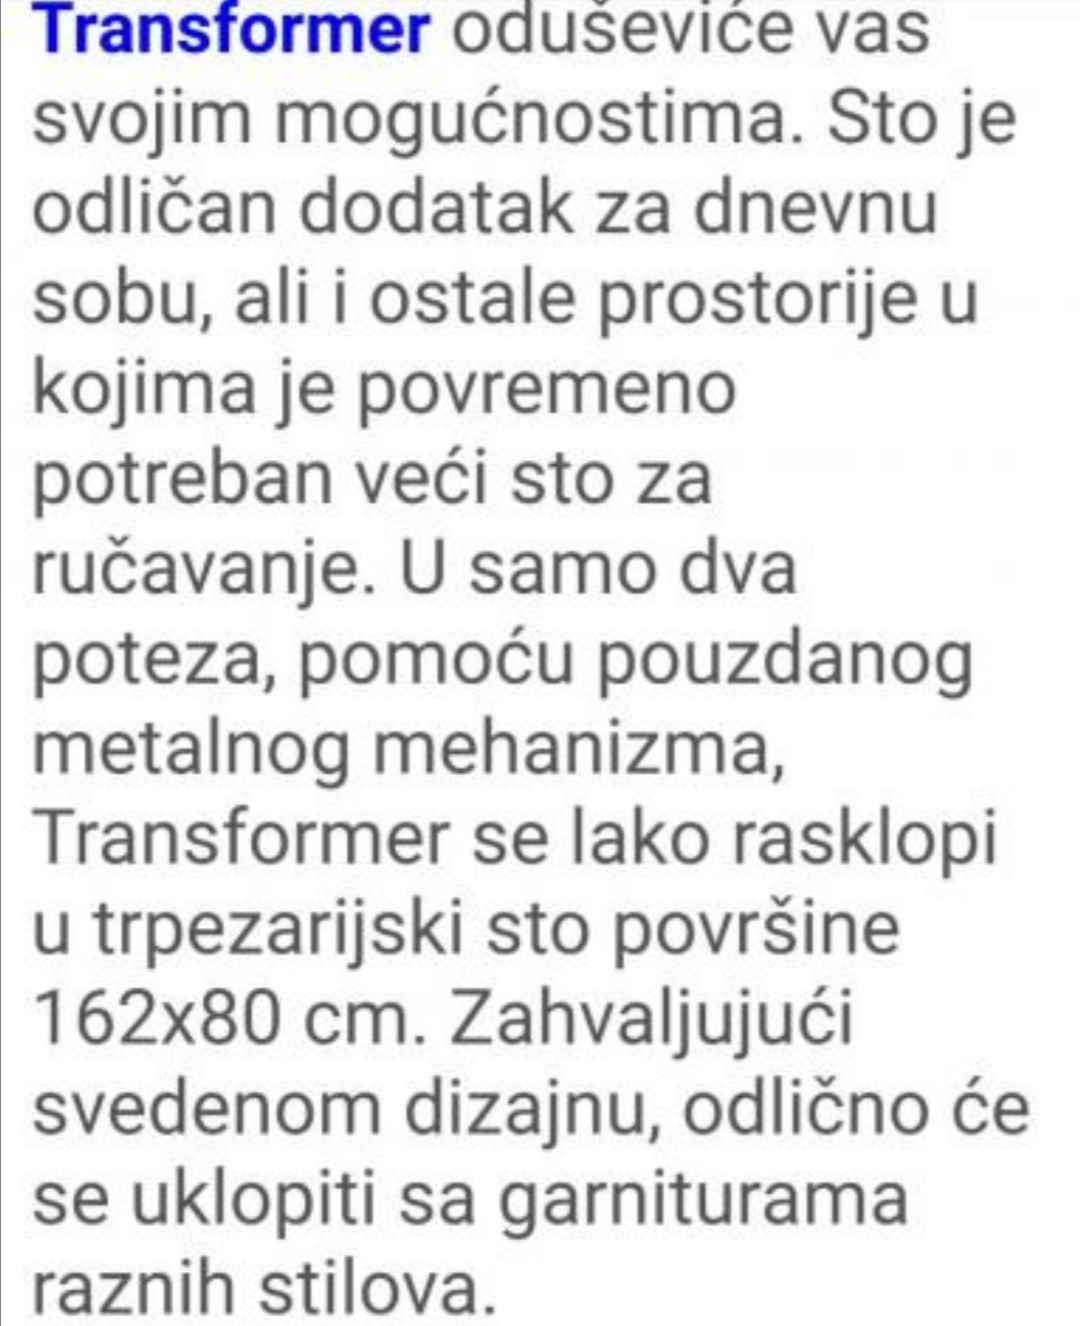 Prodajem sto transformer za male stanove- nov